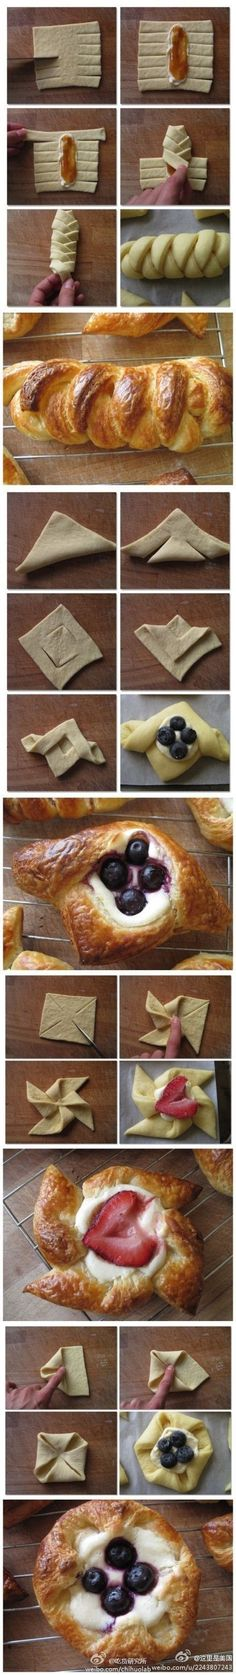 Pastry Folding Hacks | 40 Creative Food Hacks That Will Change The Way You Cook by pat.cort